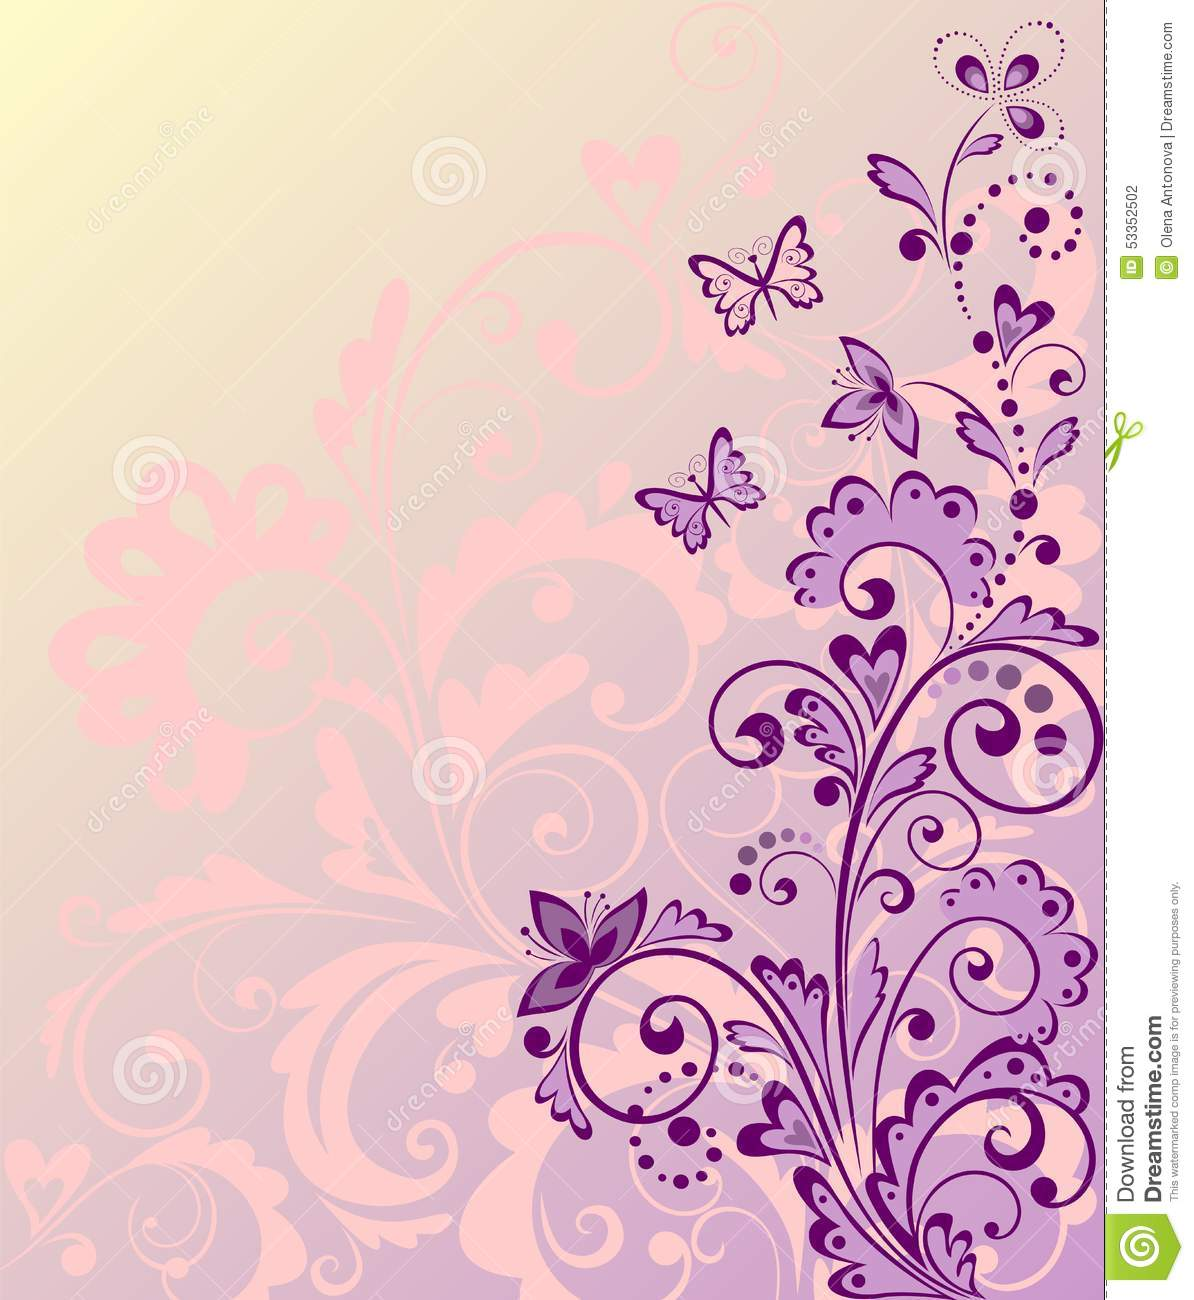 Beautiful Floral Border Stock Vector - Image: 53352502 Vintage Border Vector